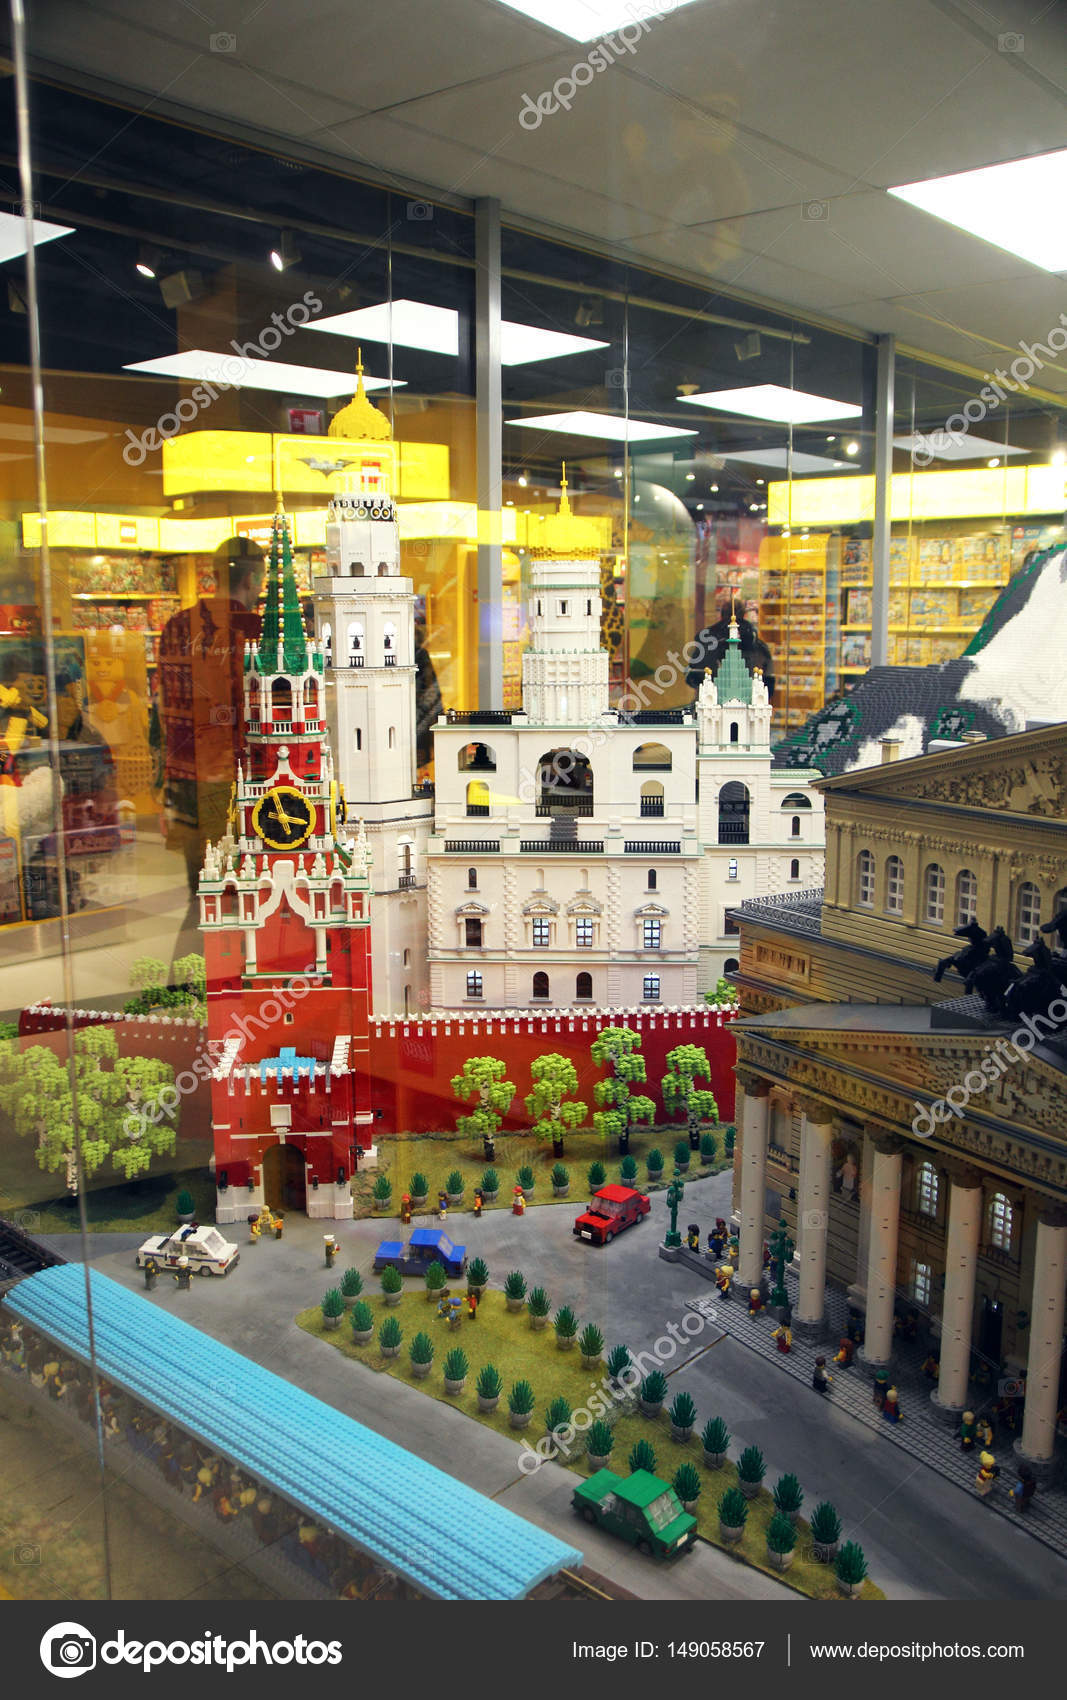 March 5  2017  Moscow  Russia  Beautiful models assembled from a     March 5  2017  Moscow  Russia  Beautiful models assembled from a Lego  designer